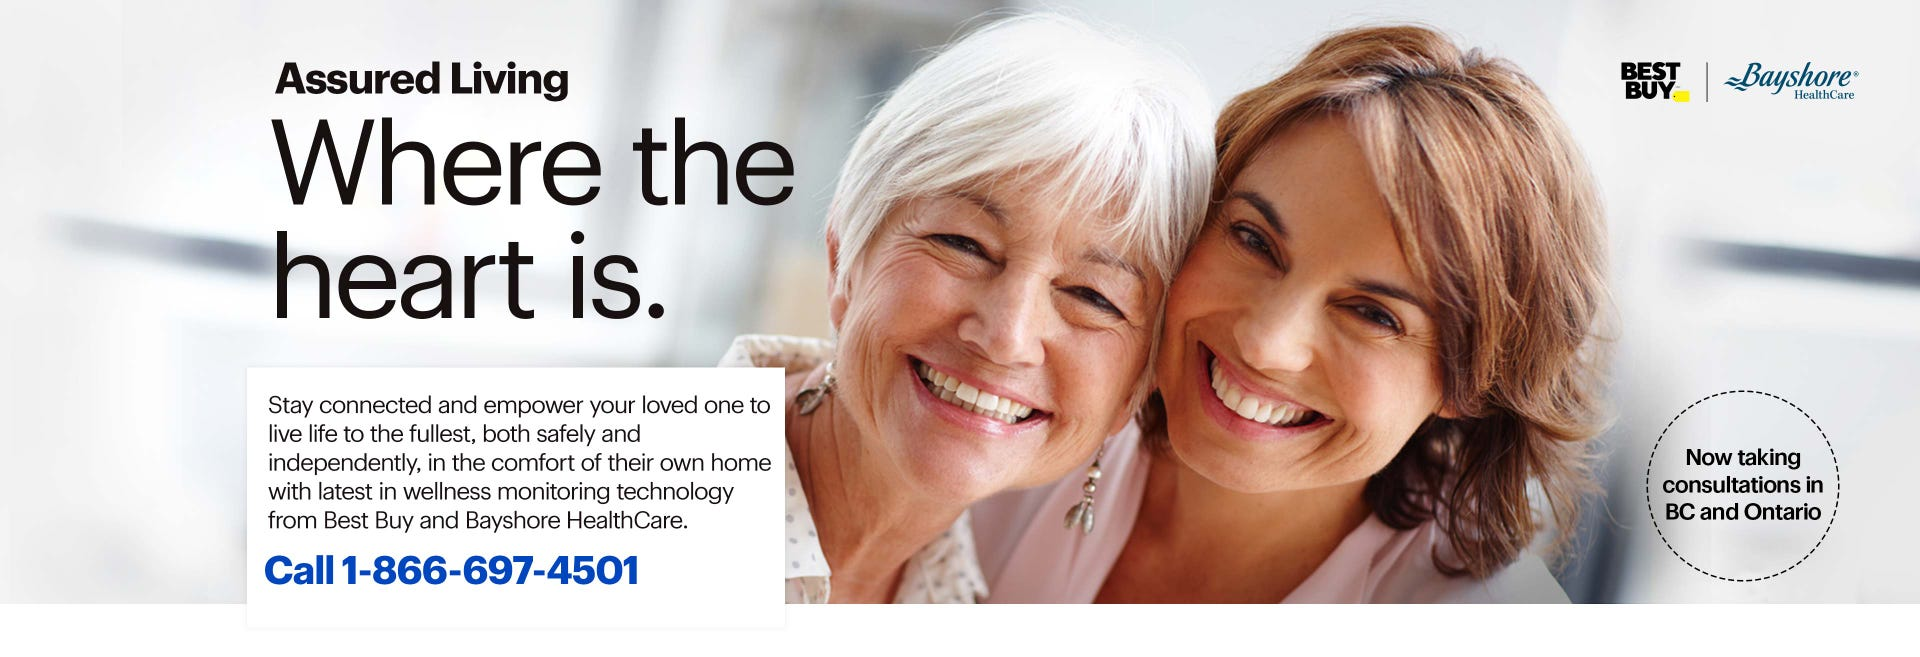 Where the heart is. Stay connected and empower your loved one to live life to the fullest, both safely and independently, in the comfort of their own home with latest in wellness monitoring technology from Best Buy. Now taking consultations in BC's Lower Mainland. Call 1-866-697-4501.